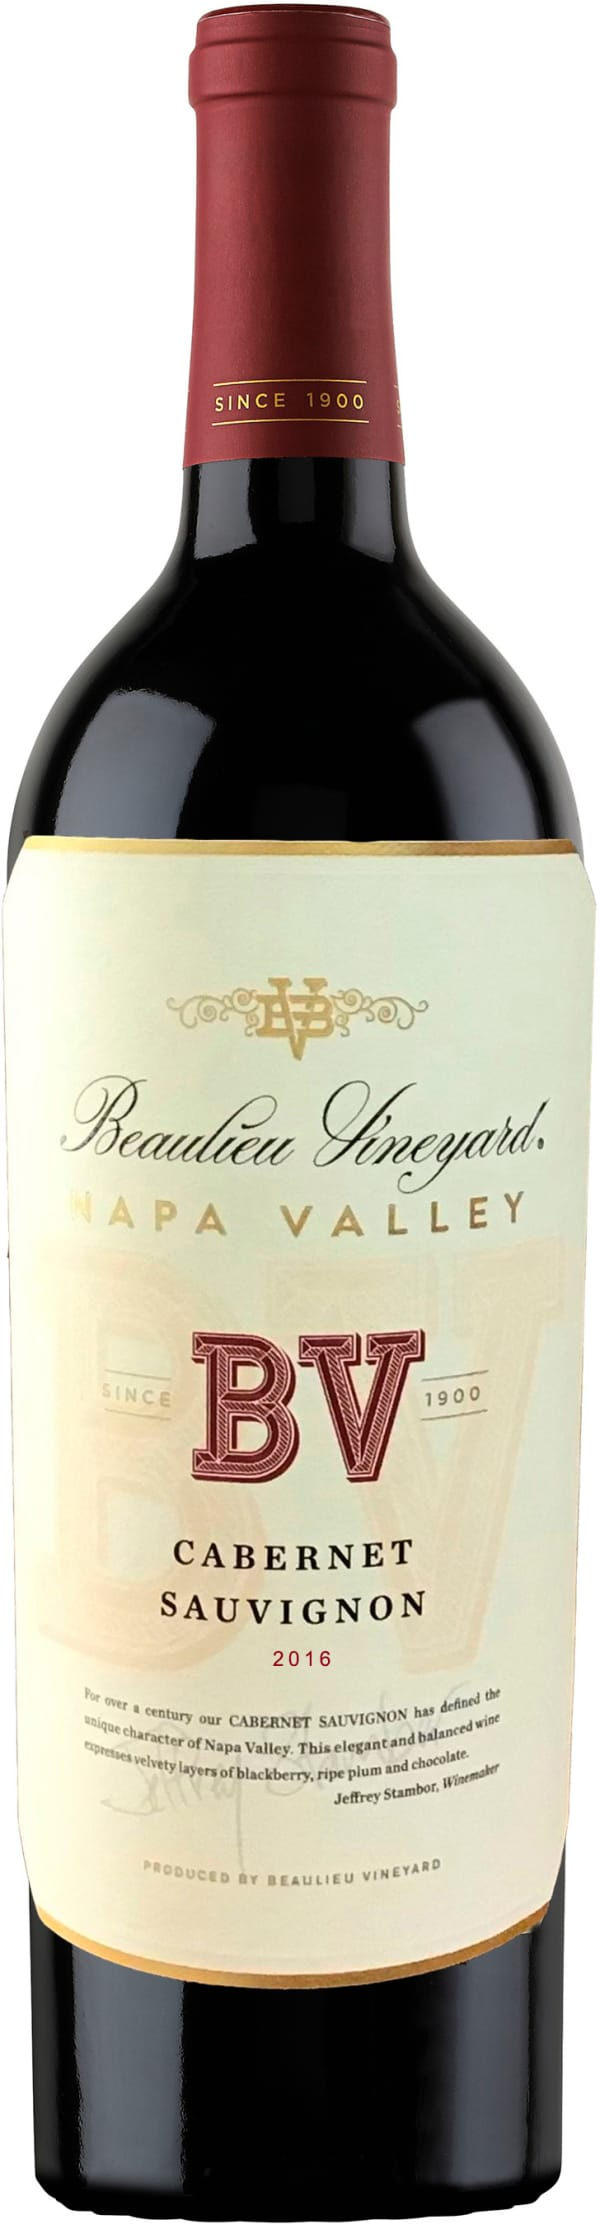 Beaulieu Vineyard Napa Valley Cabernet Sauvignon 2016